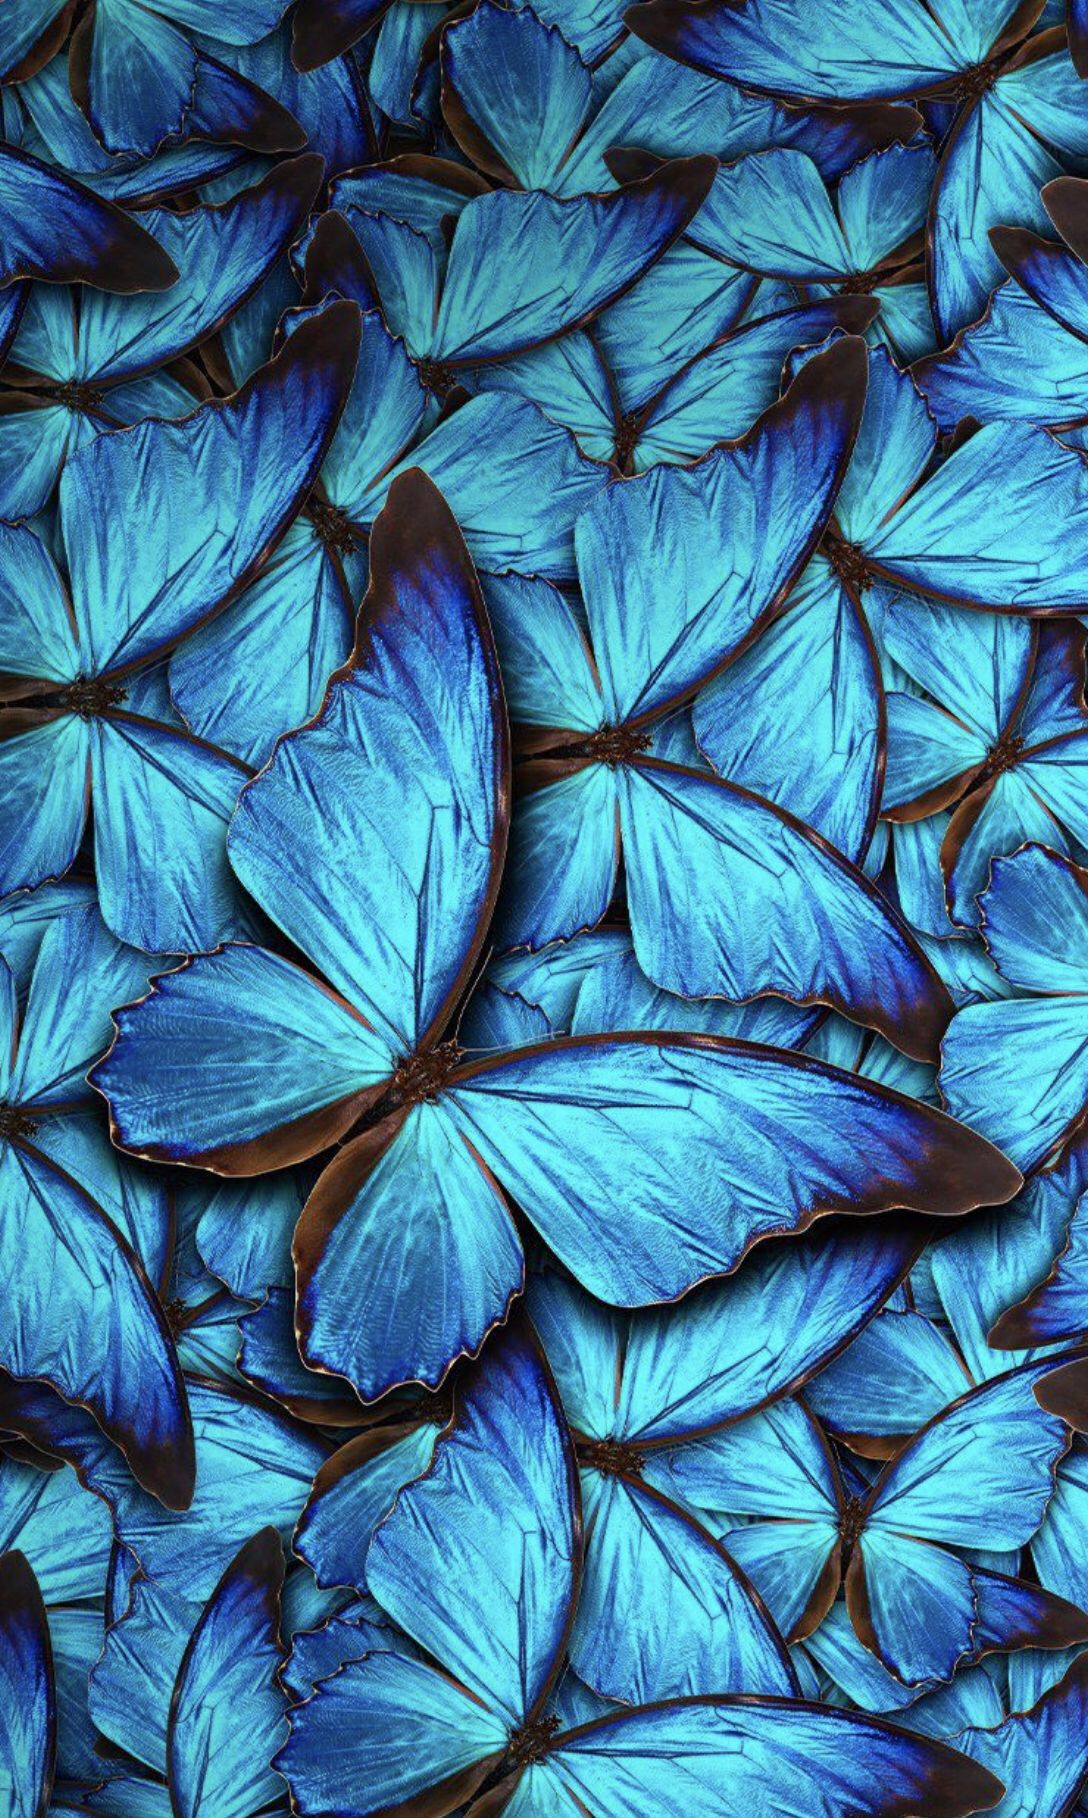 We have got 29 images about aesthetic wallpapers for laptop blue butterfly images, photos, pictures, backgrounds, and more. Pin by Tiffany Williams on BLUE AESTHETICS   Blue